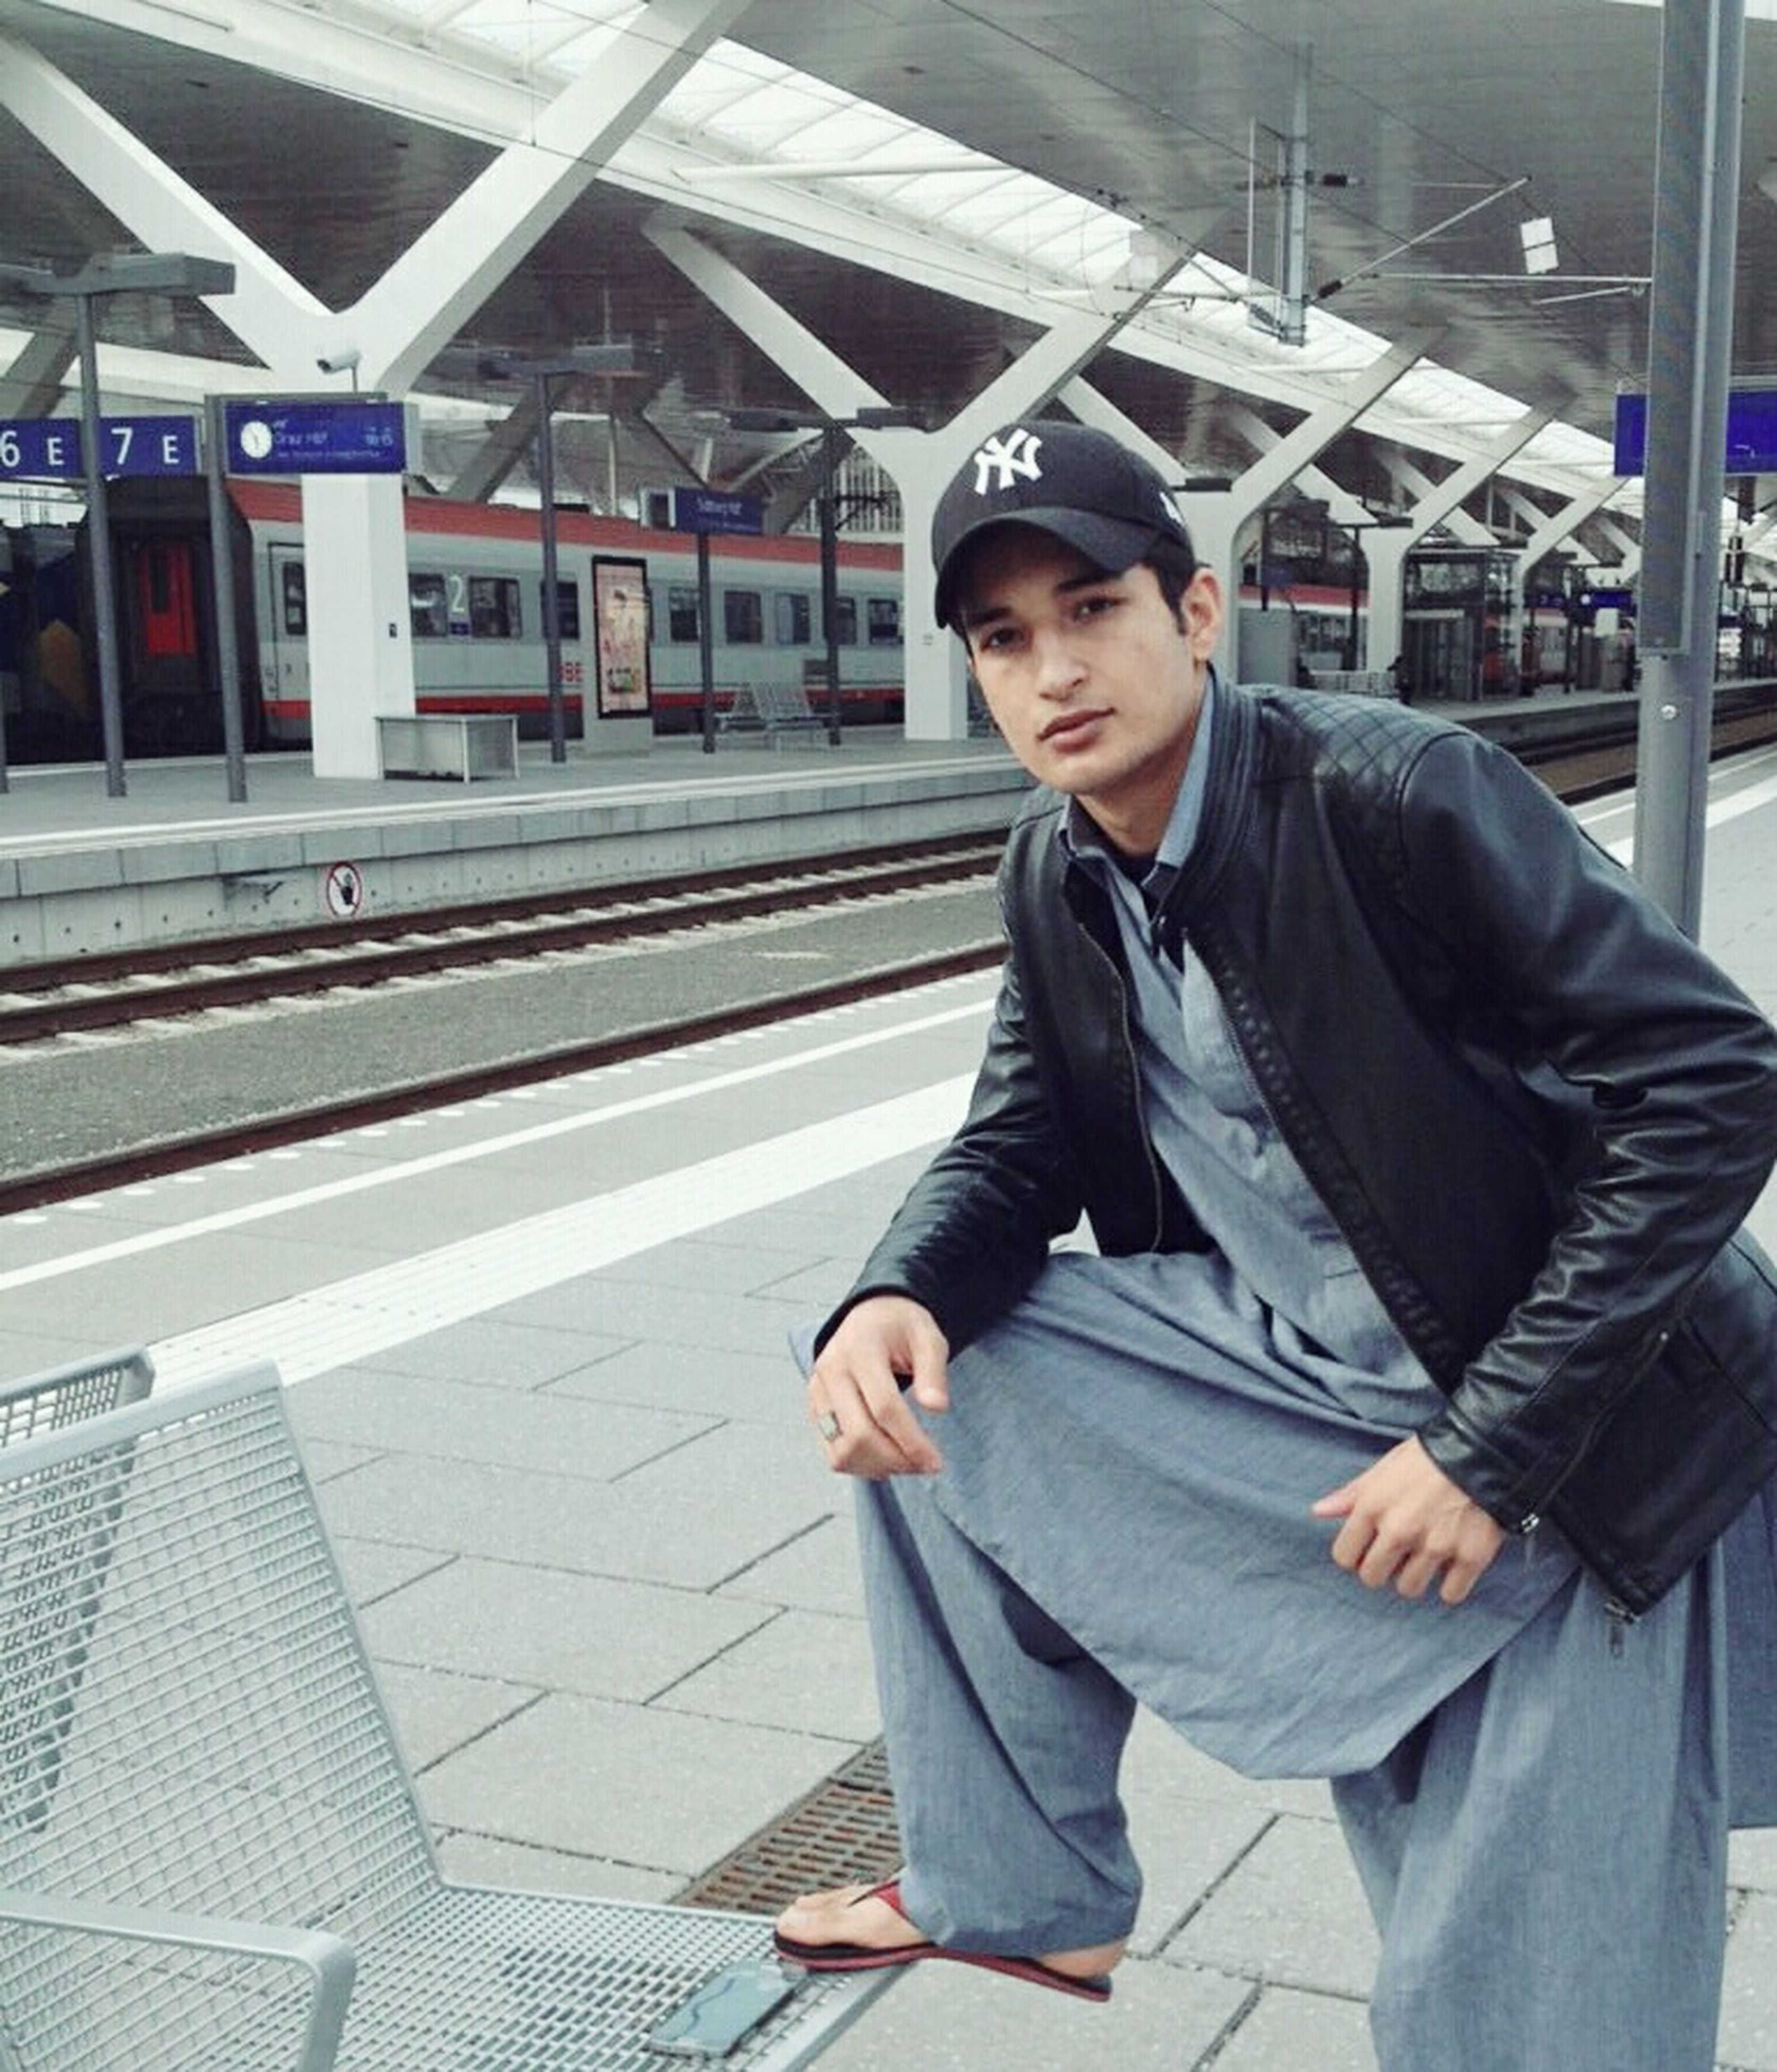 young adult, casual clothing, lifestyles, person, transportation, portrait, looking at camera, young men, front view, leisure activity, standing, sitting, three quarter length, mode of transport, smiling, public transportation, railroad station platform